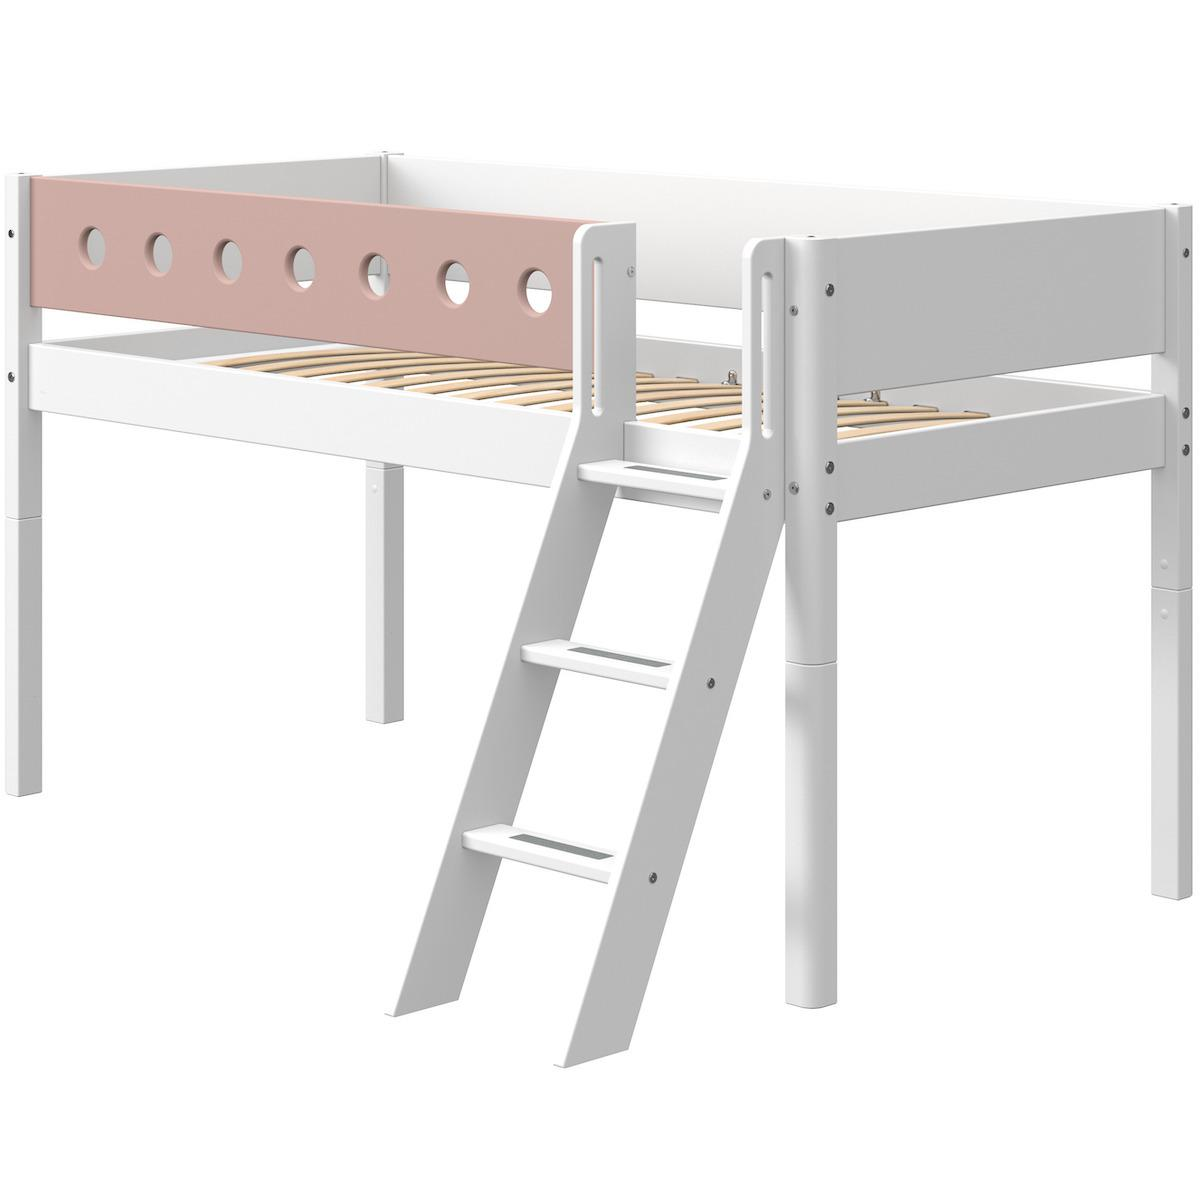 Cama media alta 90x190cm escalera inclinada WHITE Flexa blanco-rosa claro